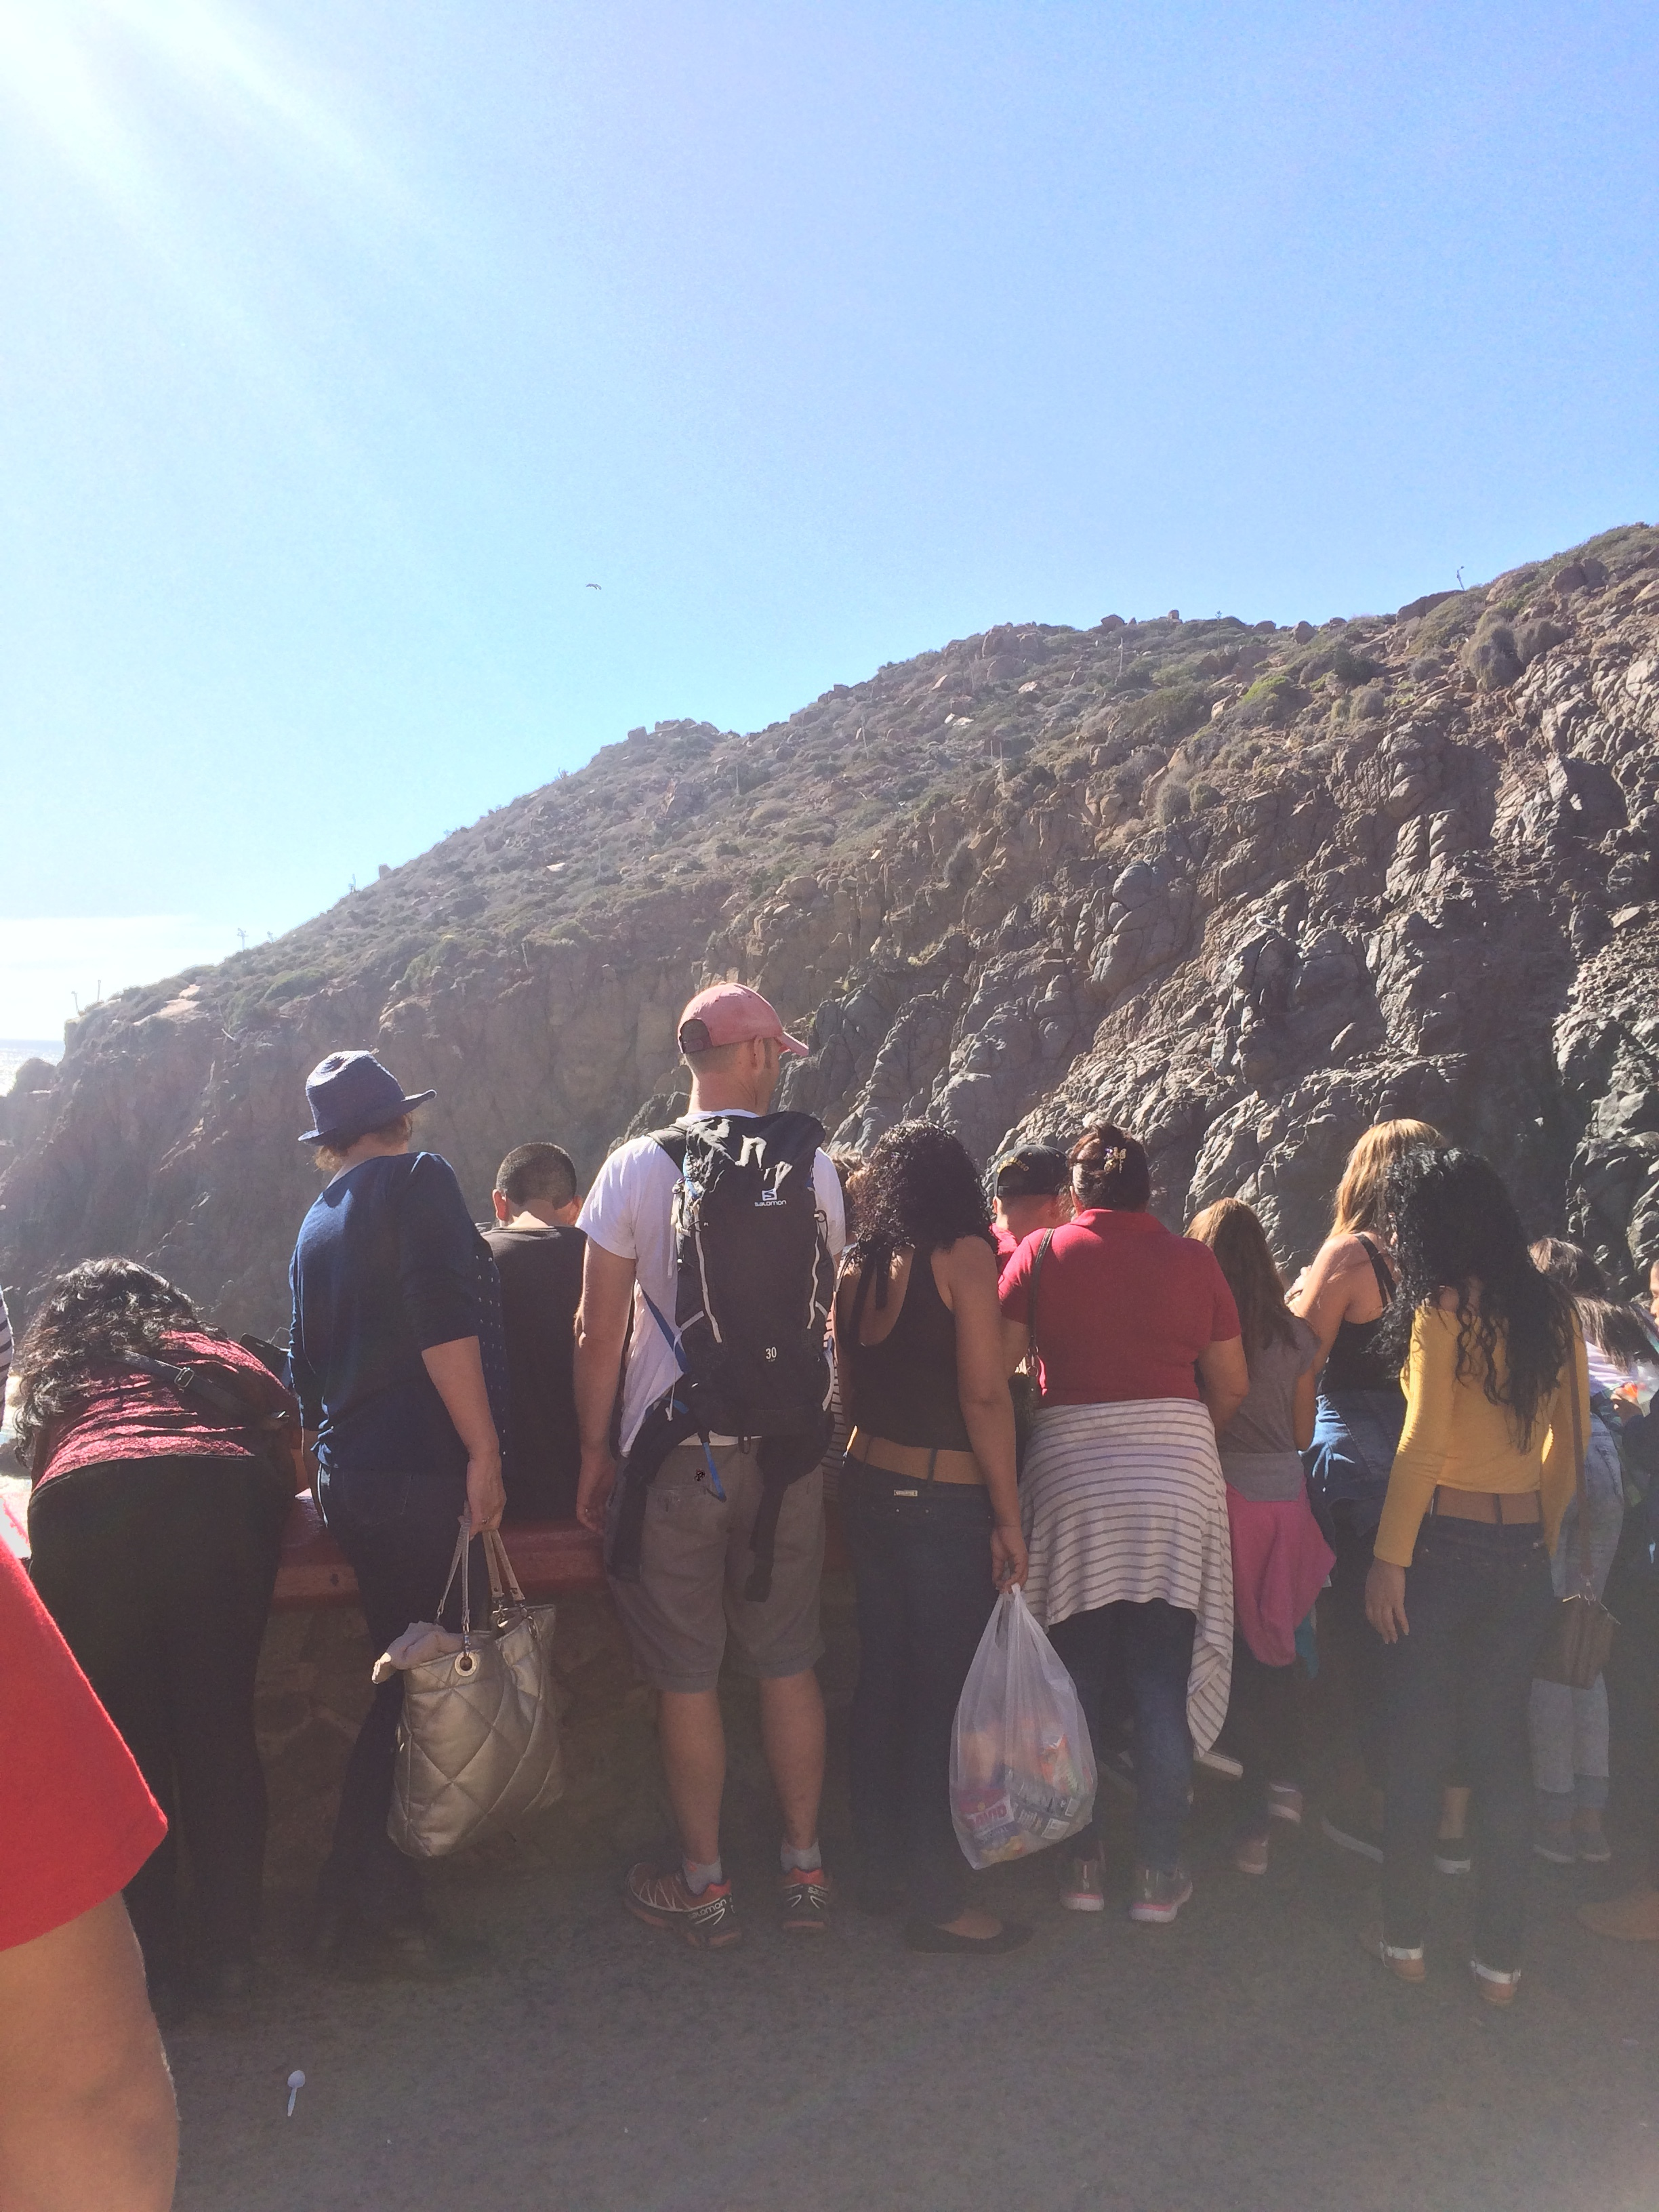 La Bufadora has been and continues to be one of Ensenada's most popular attractions.